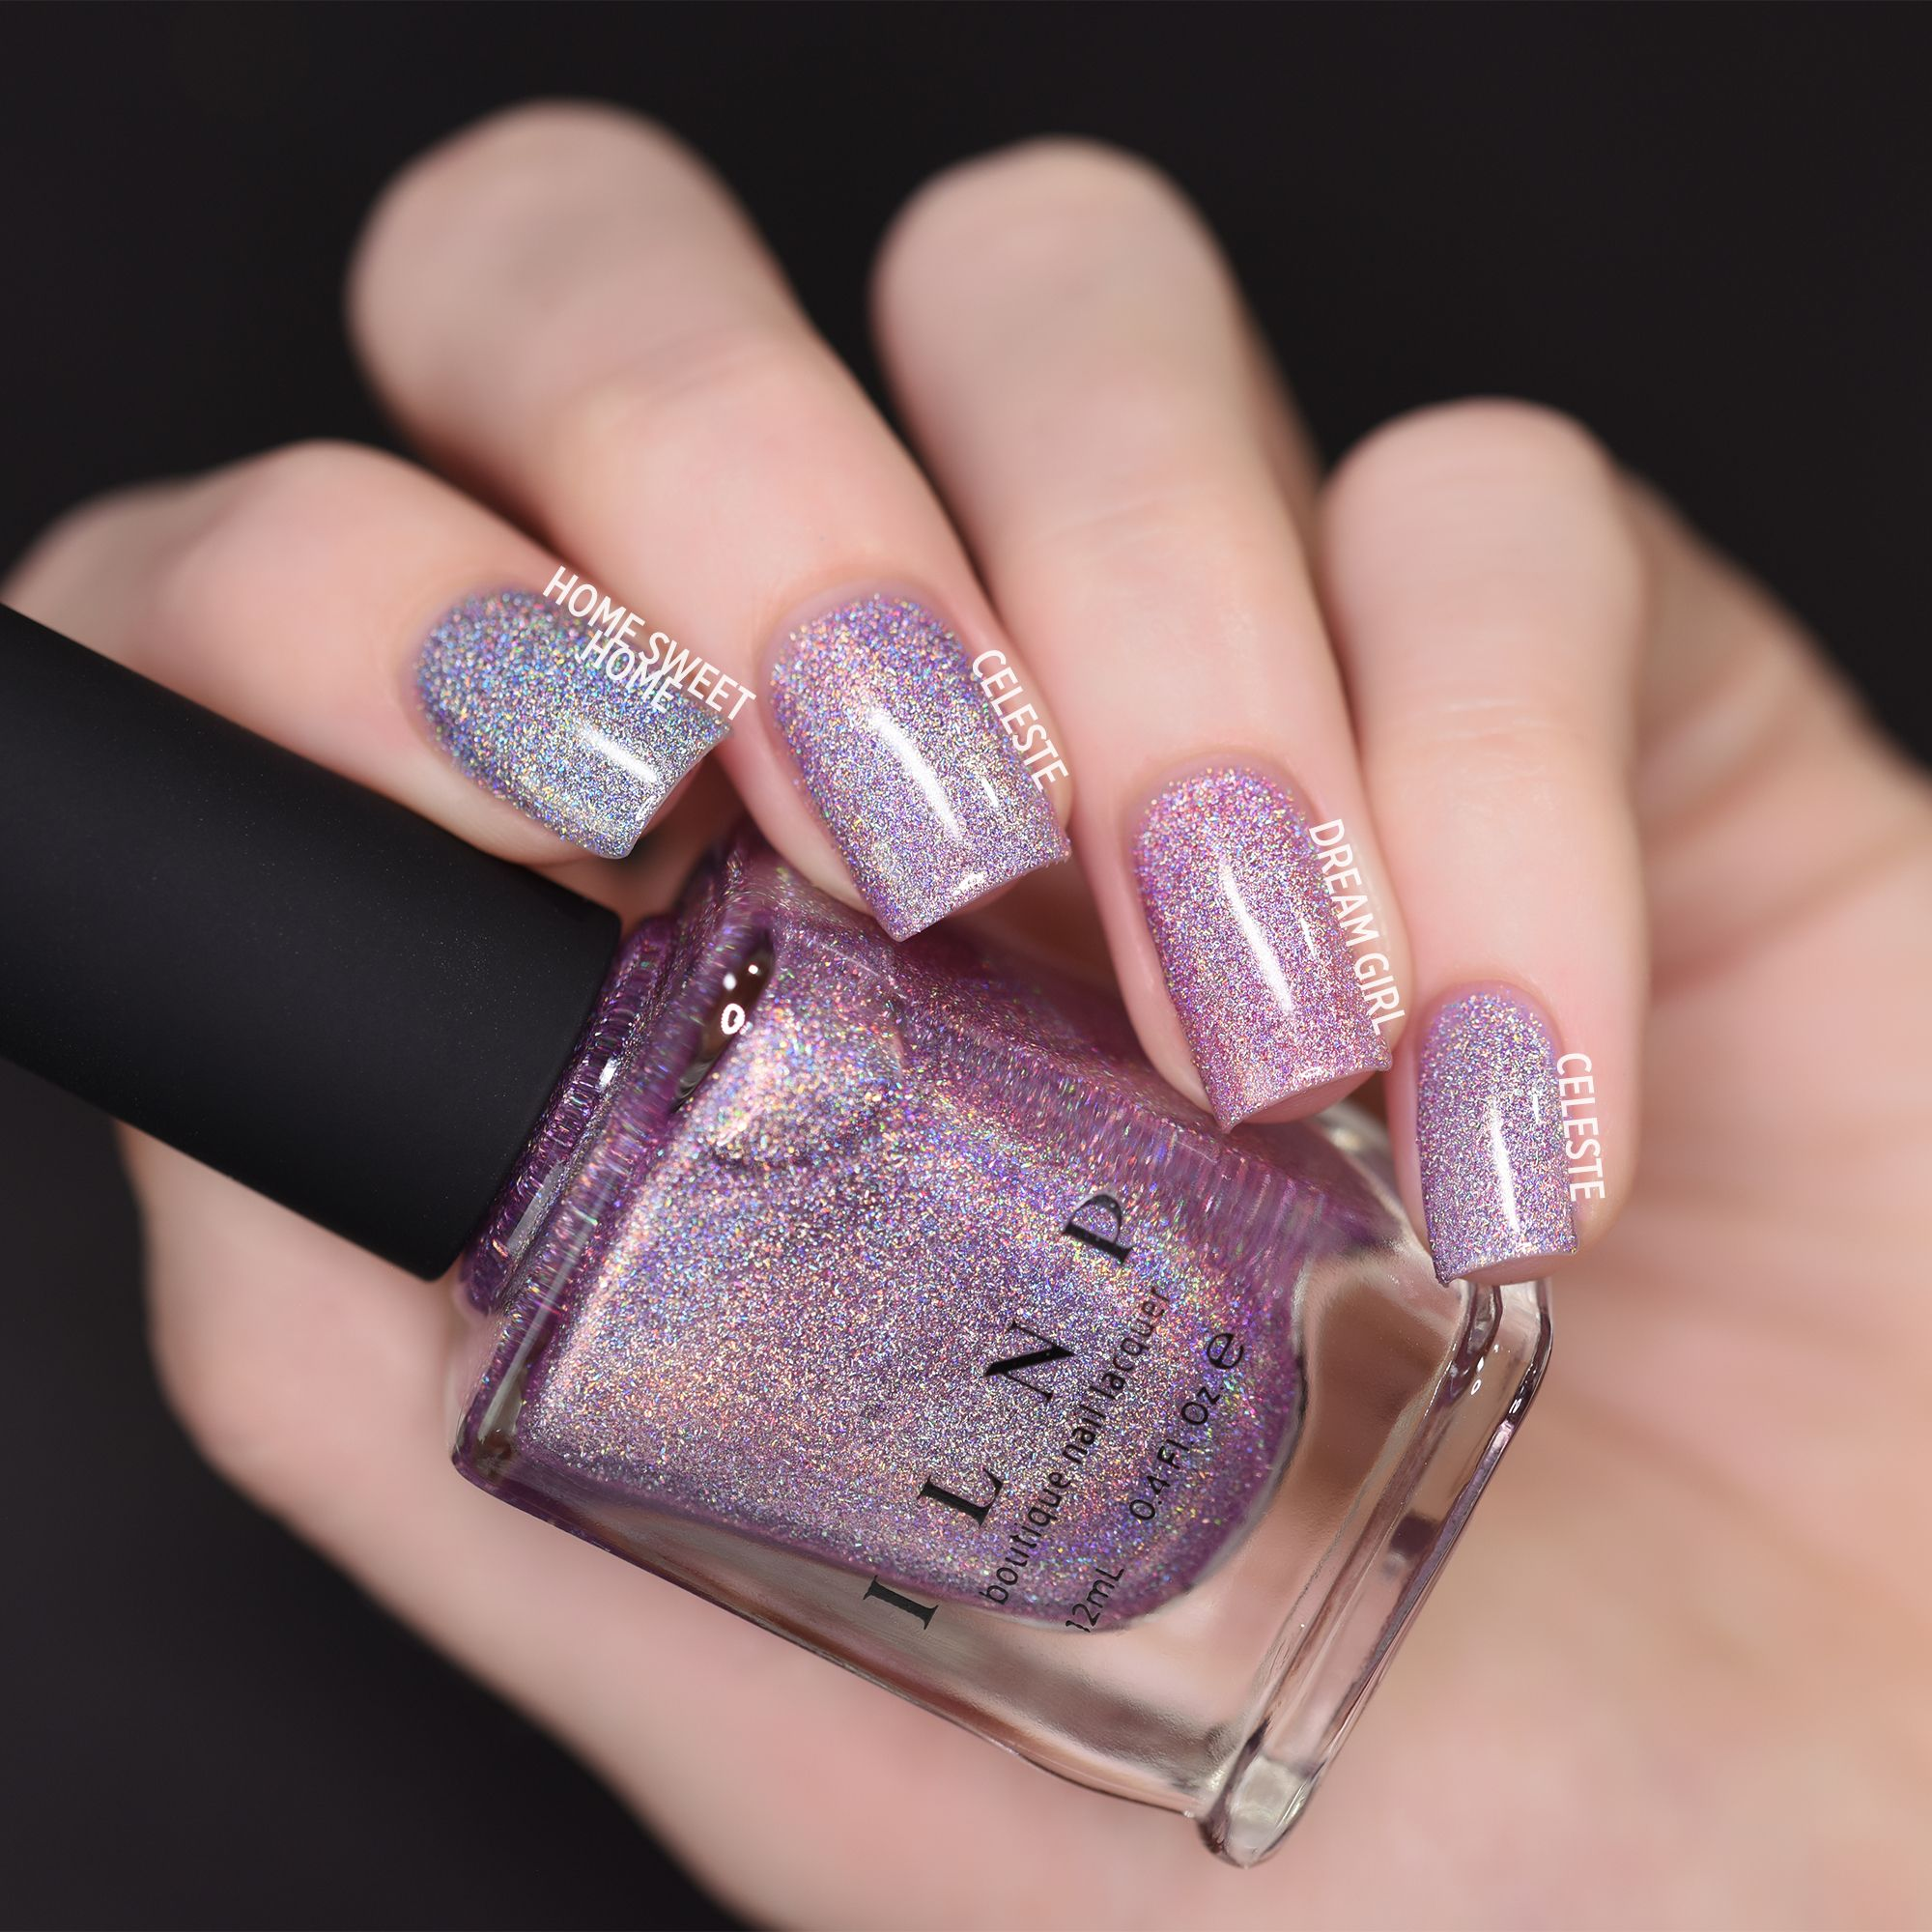 Celeste – Stunning Lilac Ultra Holographic Nail Polish by ILNP